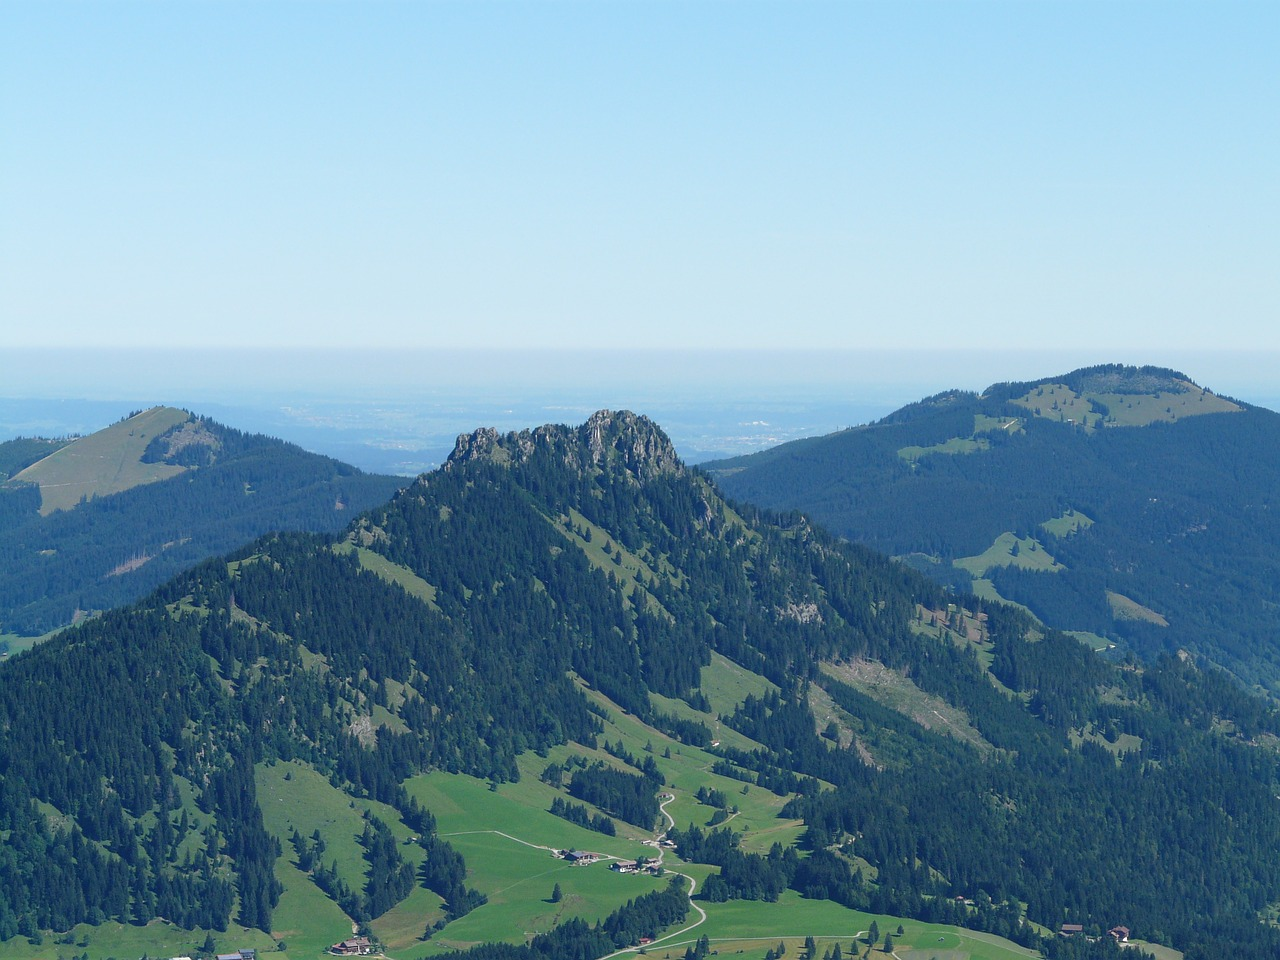 sorg schrofen,mountain,summit,tine,iseler,outlook,mountains,allgäu,landscape,oberjoch,vision,distant view,free pictures, free photos, free images, royalty free, free illustrations, public domain